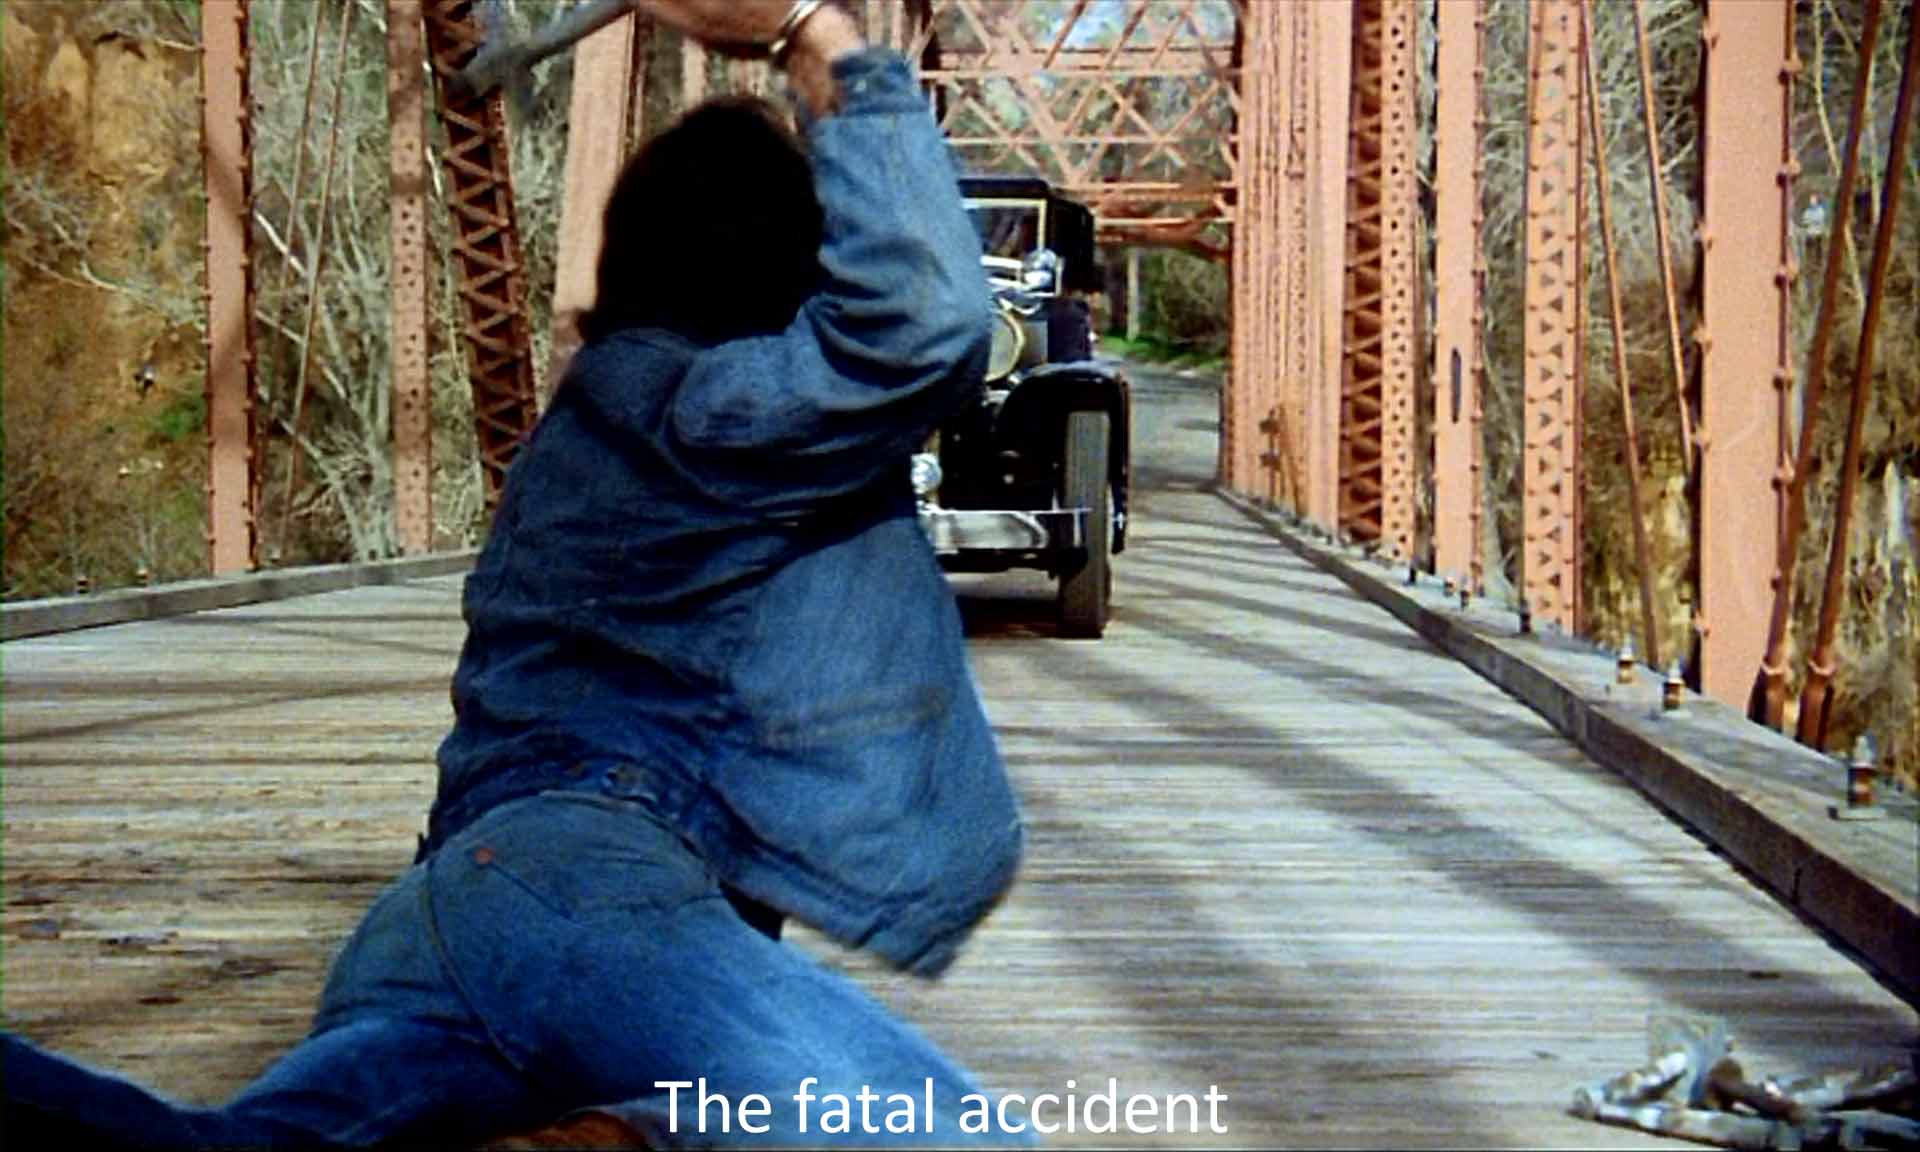 The fatal accident